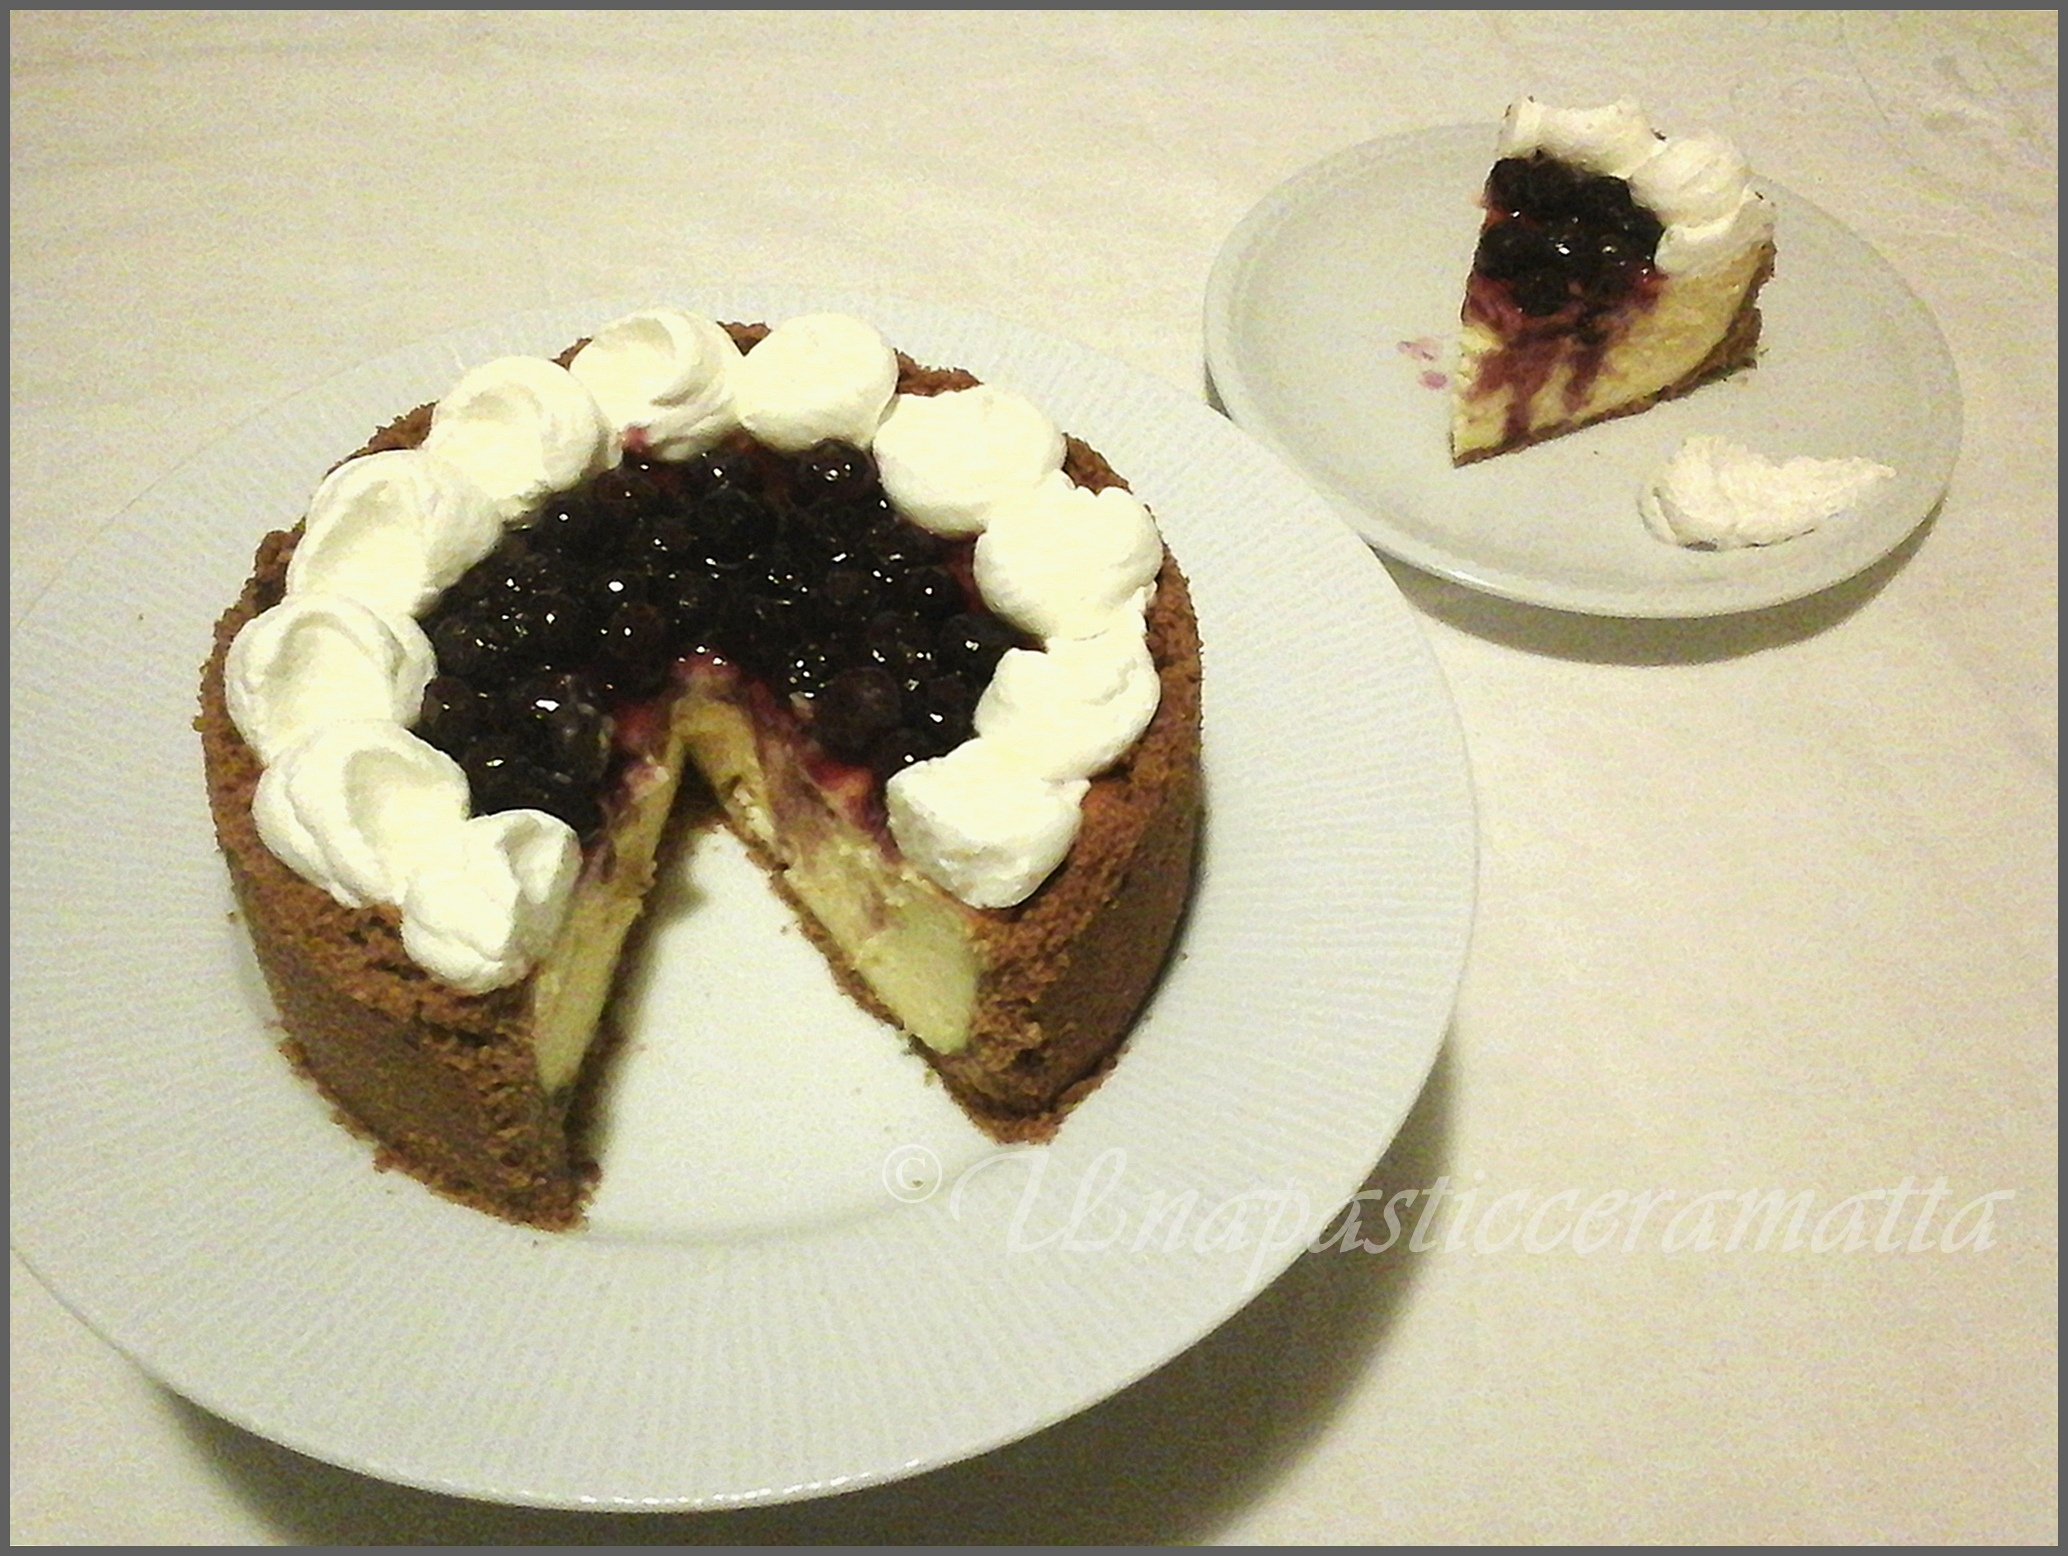 Cheese-cake al limone e mirtilli